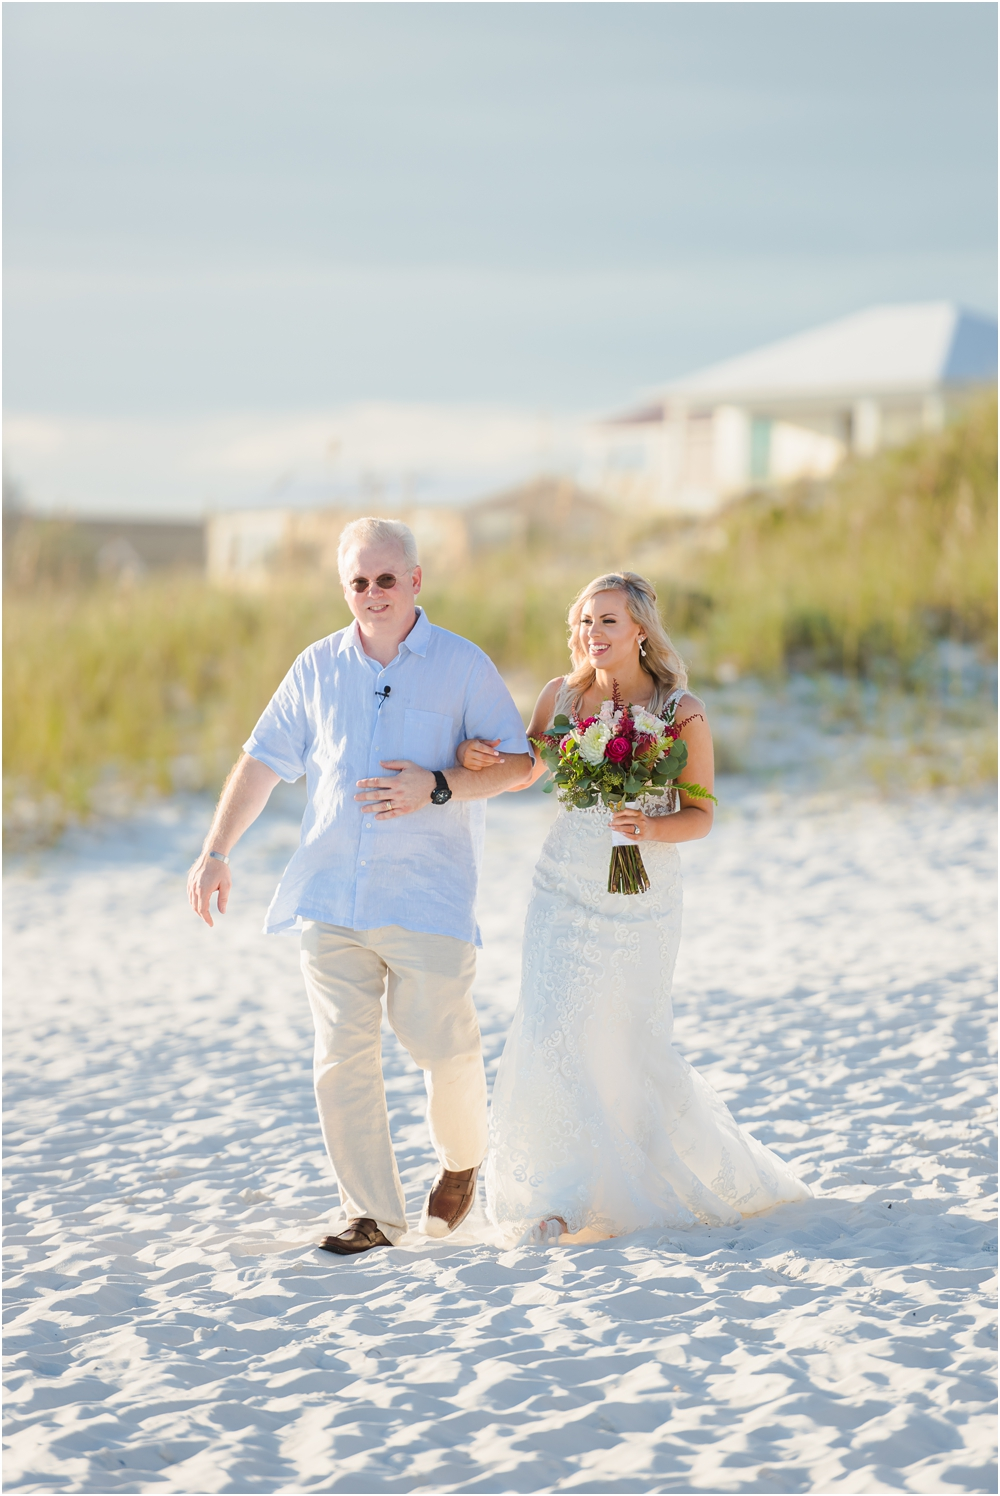 mcglothlin-wedding-kiersten-stevenson-photography-30a-panama-city-beach-dothan-tallahassee-(77-of-145).jpg